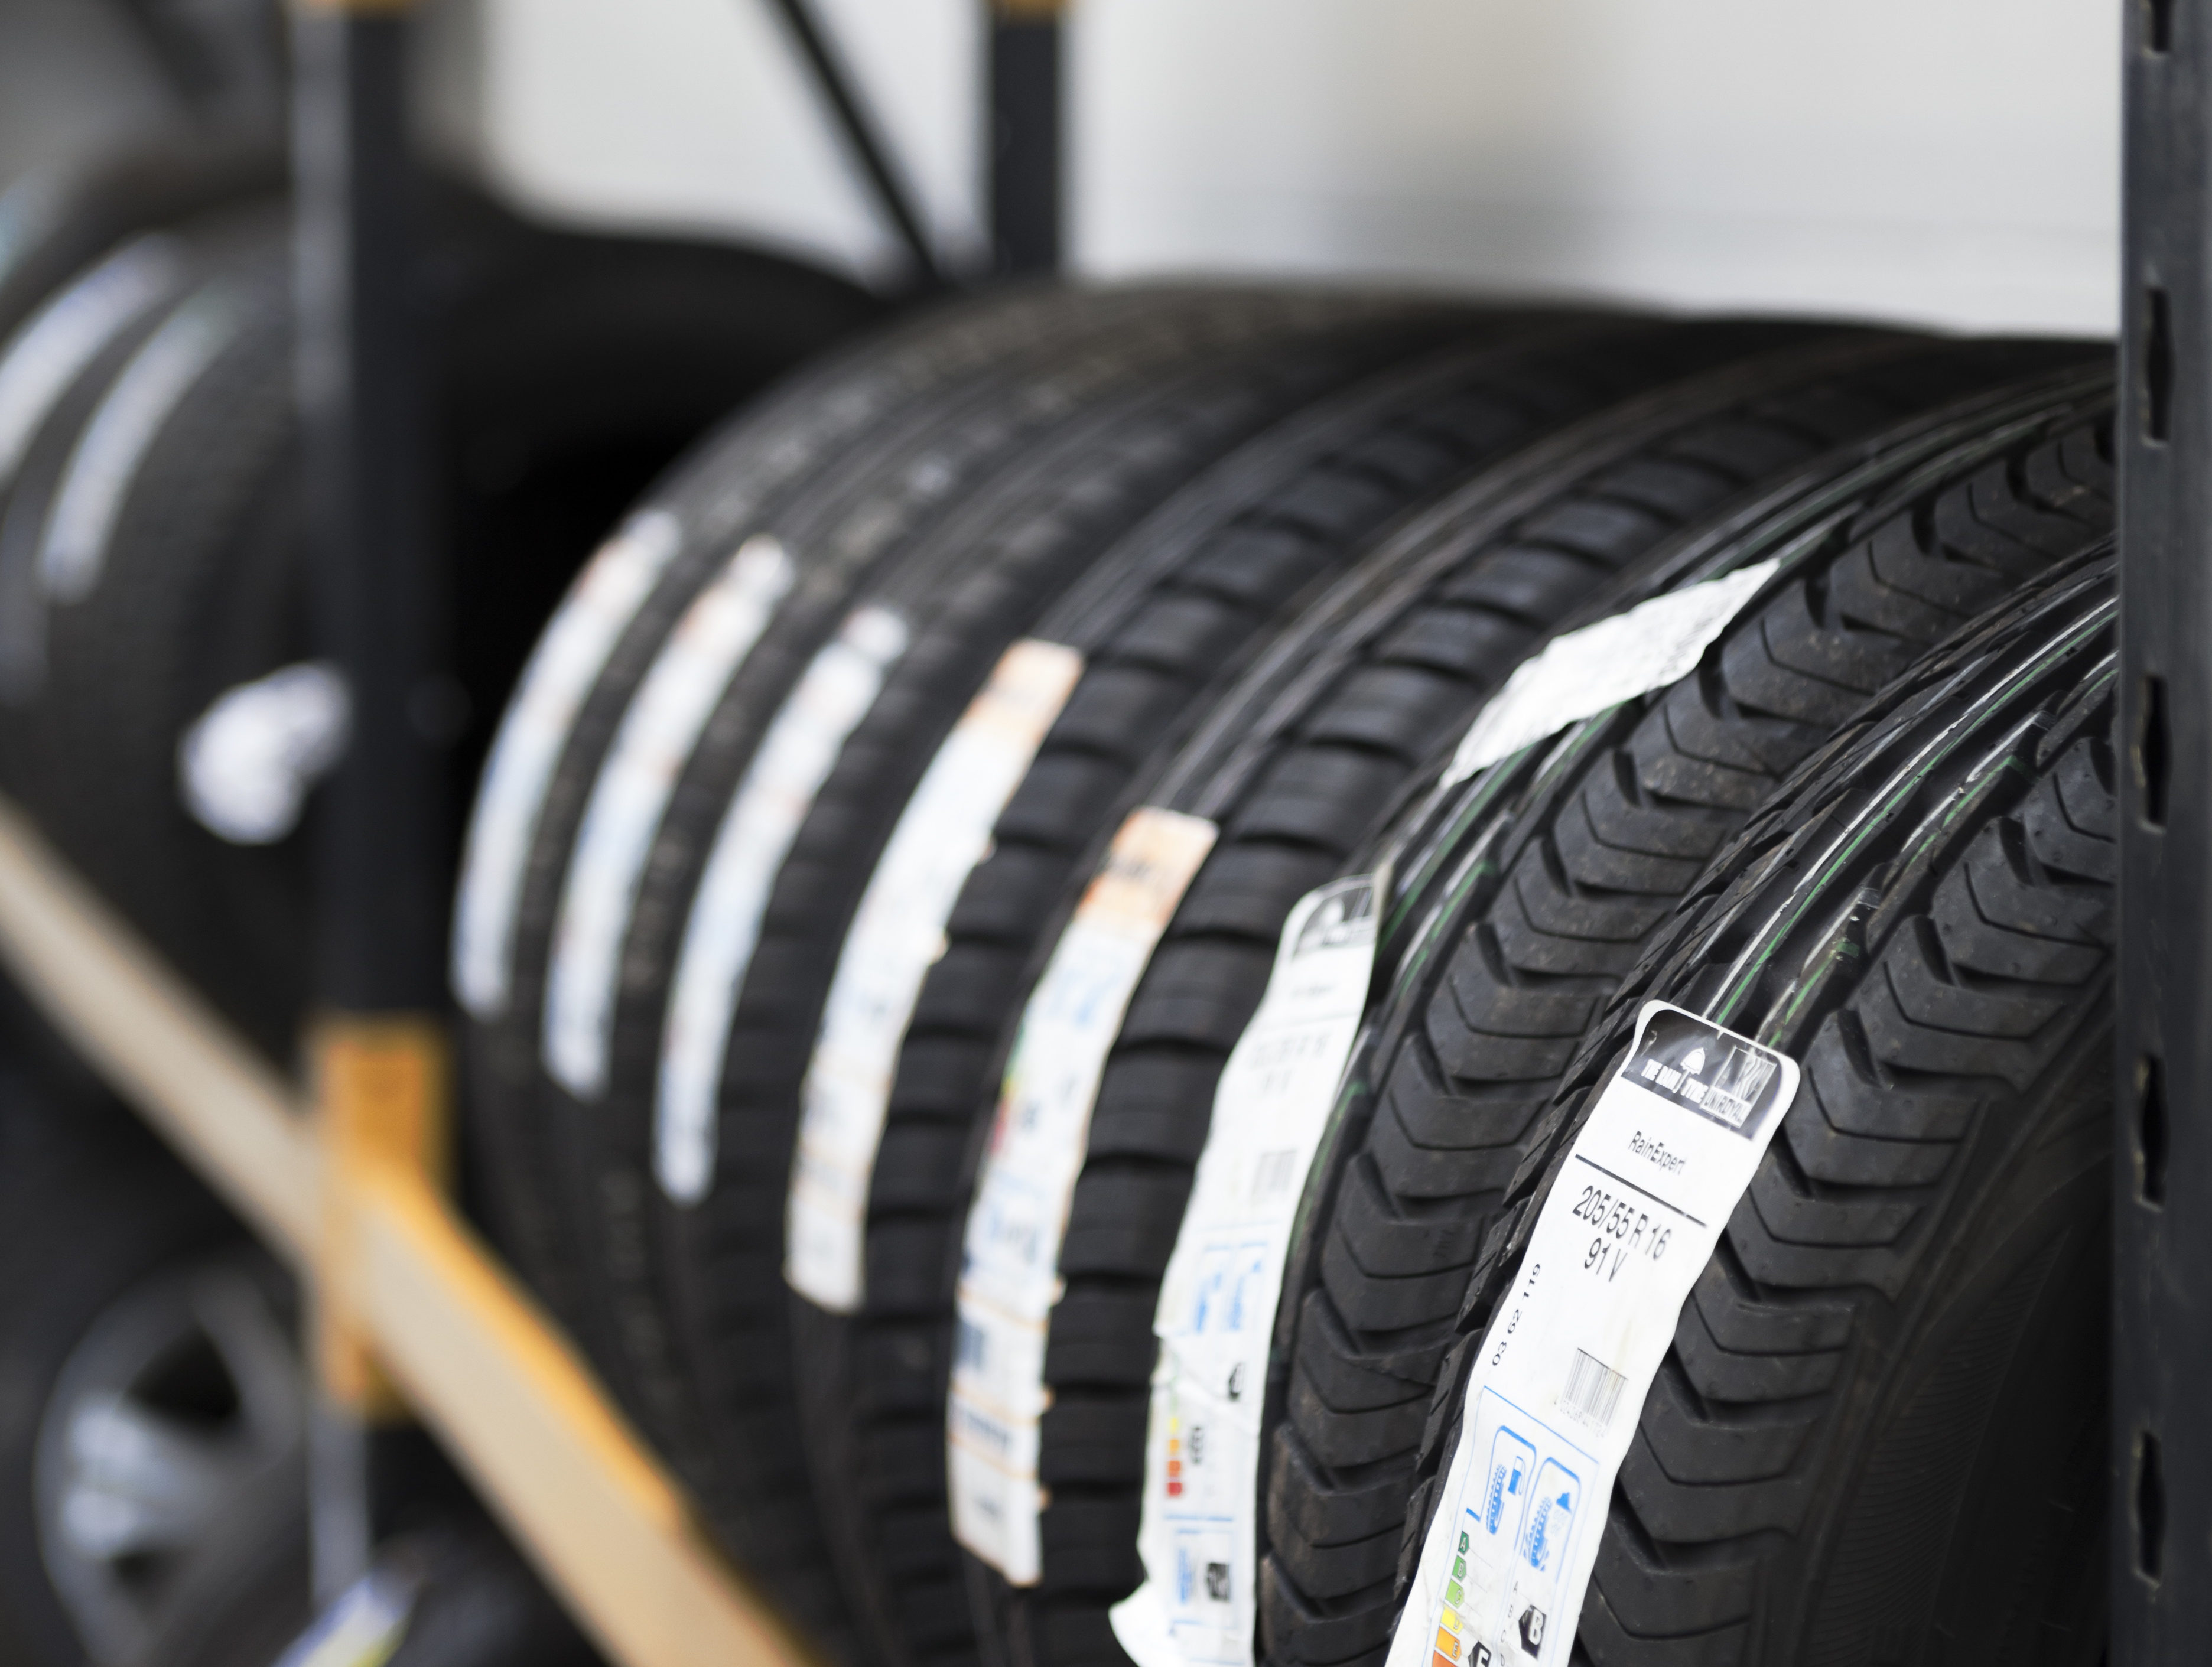 Lots of tyres in stock!